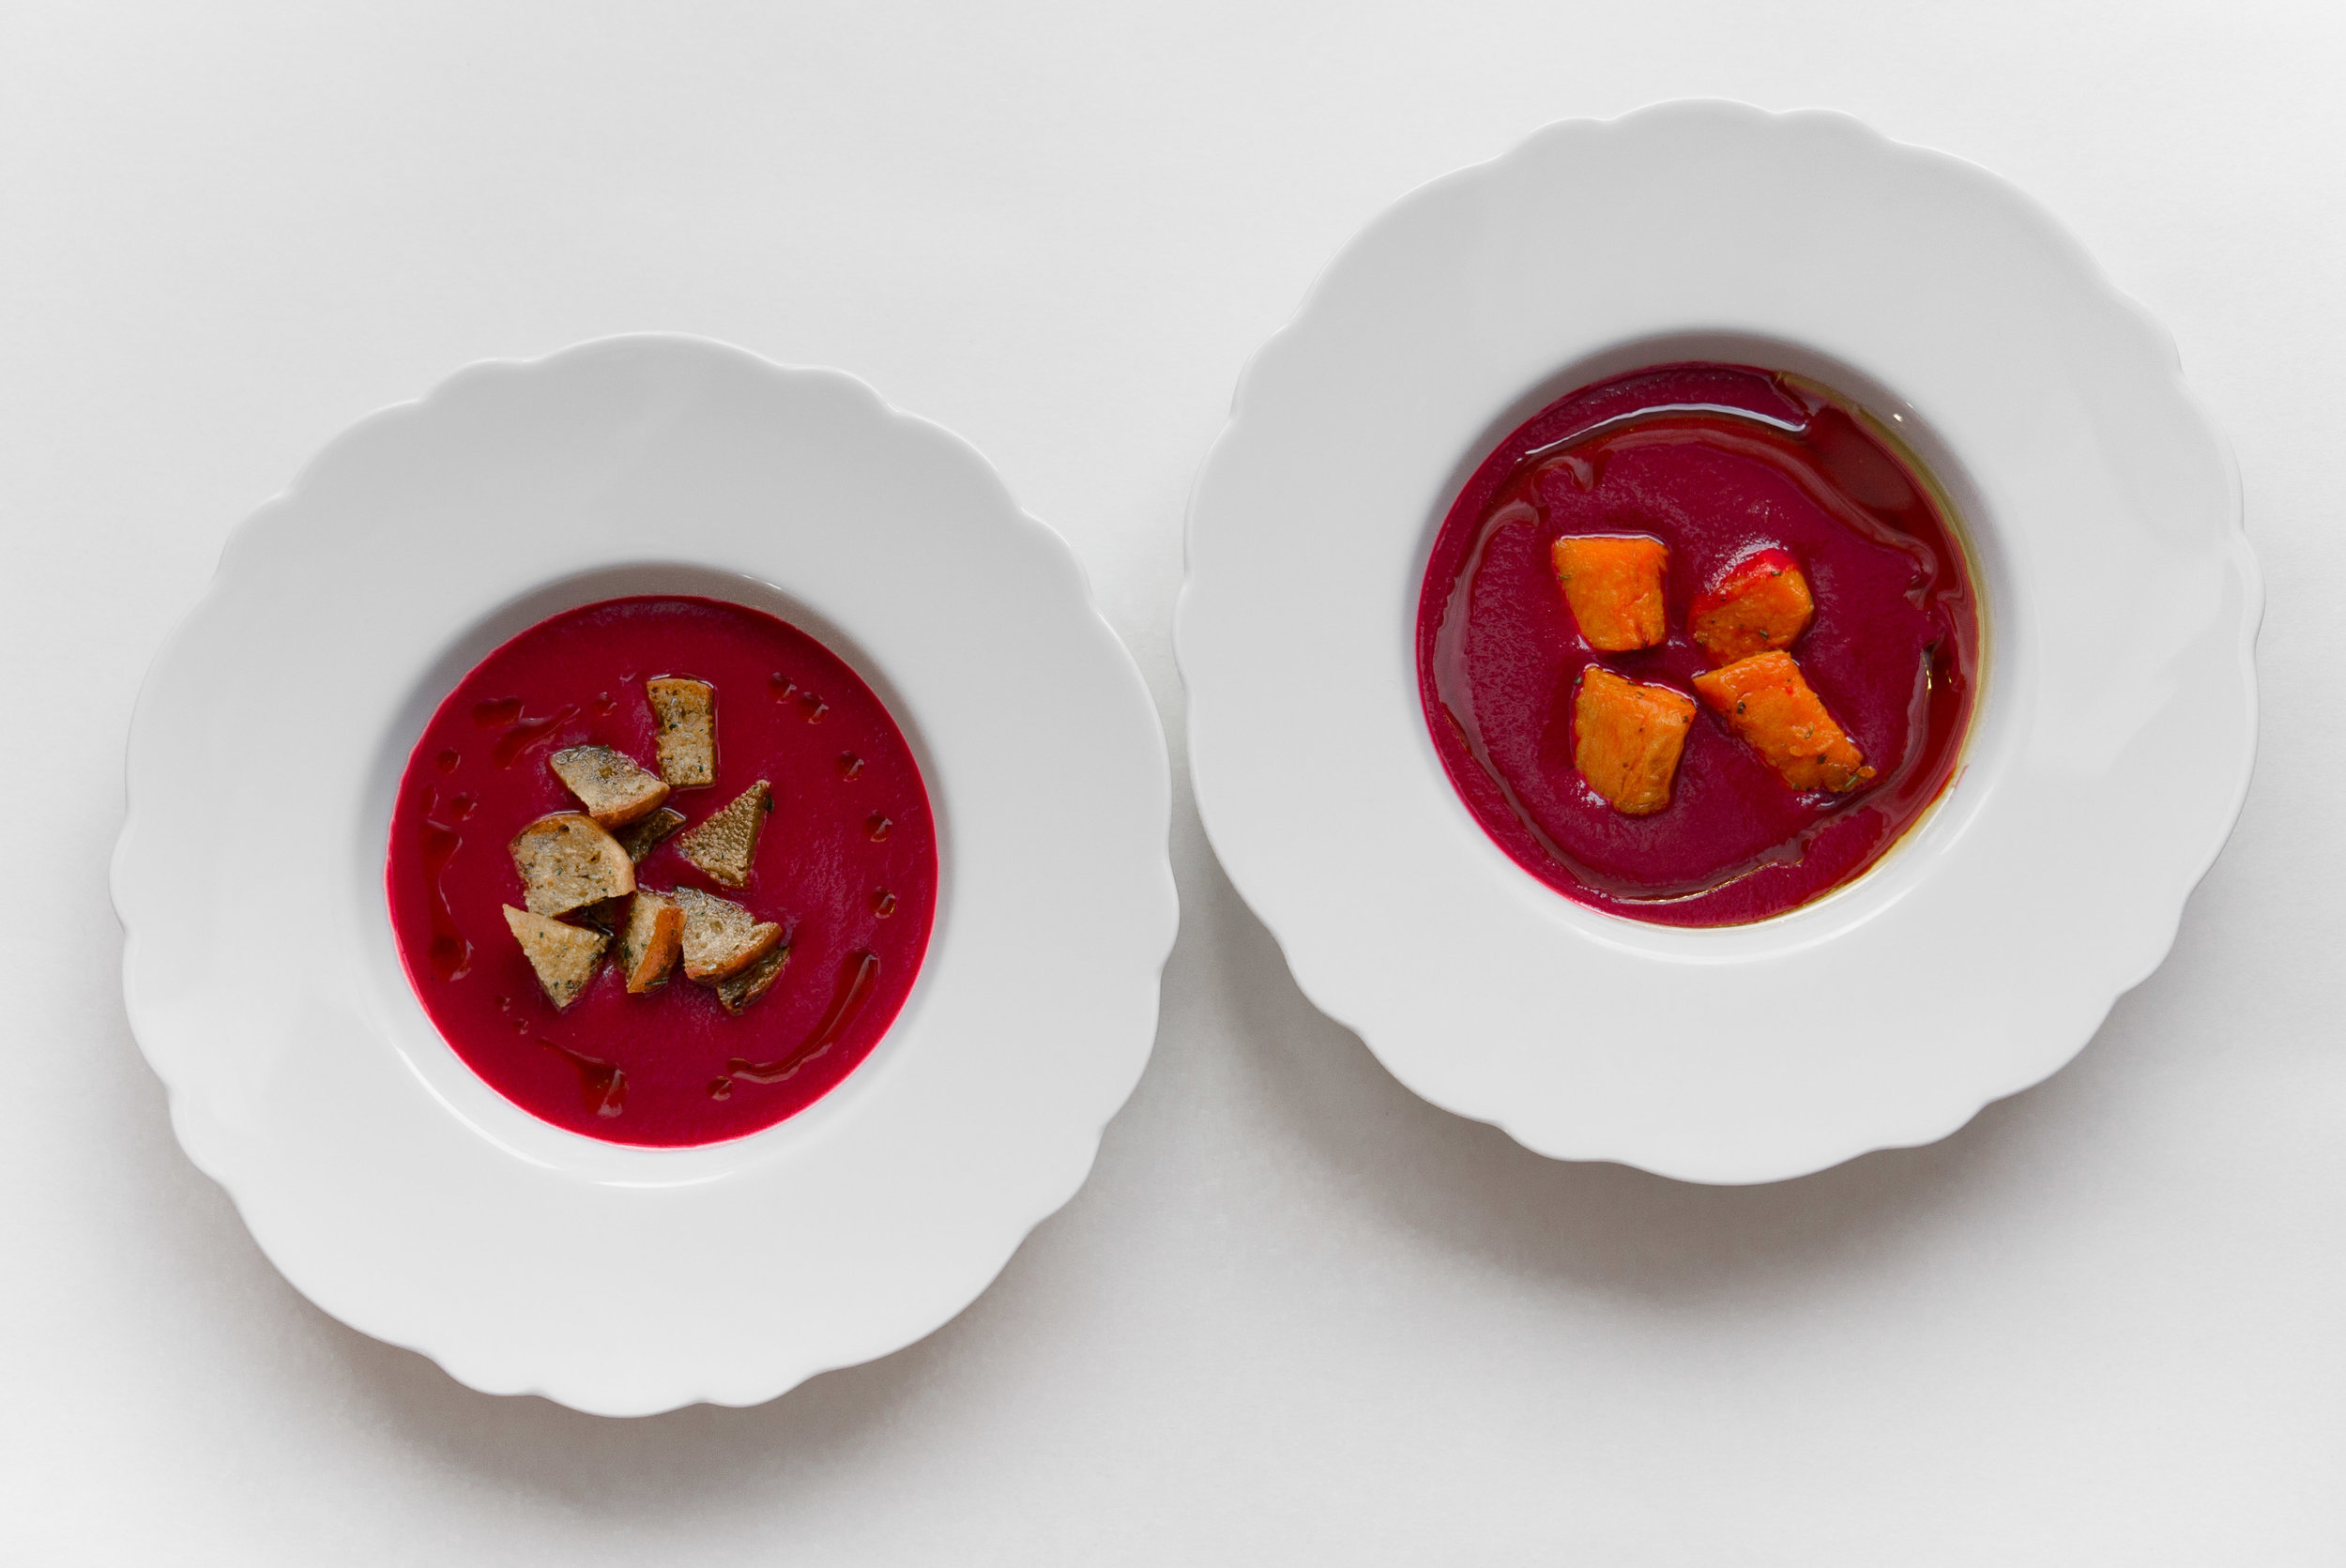 Jewel-toned cream of beet soup with rosemary boasts clean, earthy, and woodsy flavors that marry well with both aromatic croutons and the spicy sweetness of roast sweet potato. Porcelain plates by Hutschenreuther. Photo by the author, taken in daylight with the Leica X1.